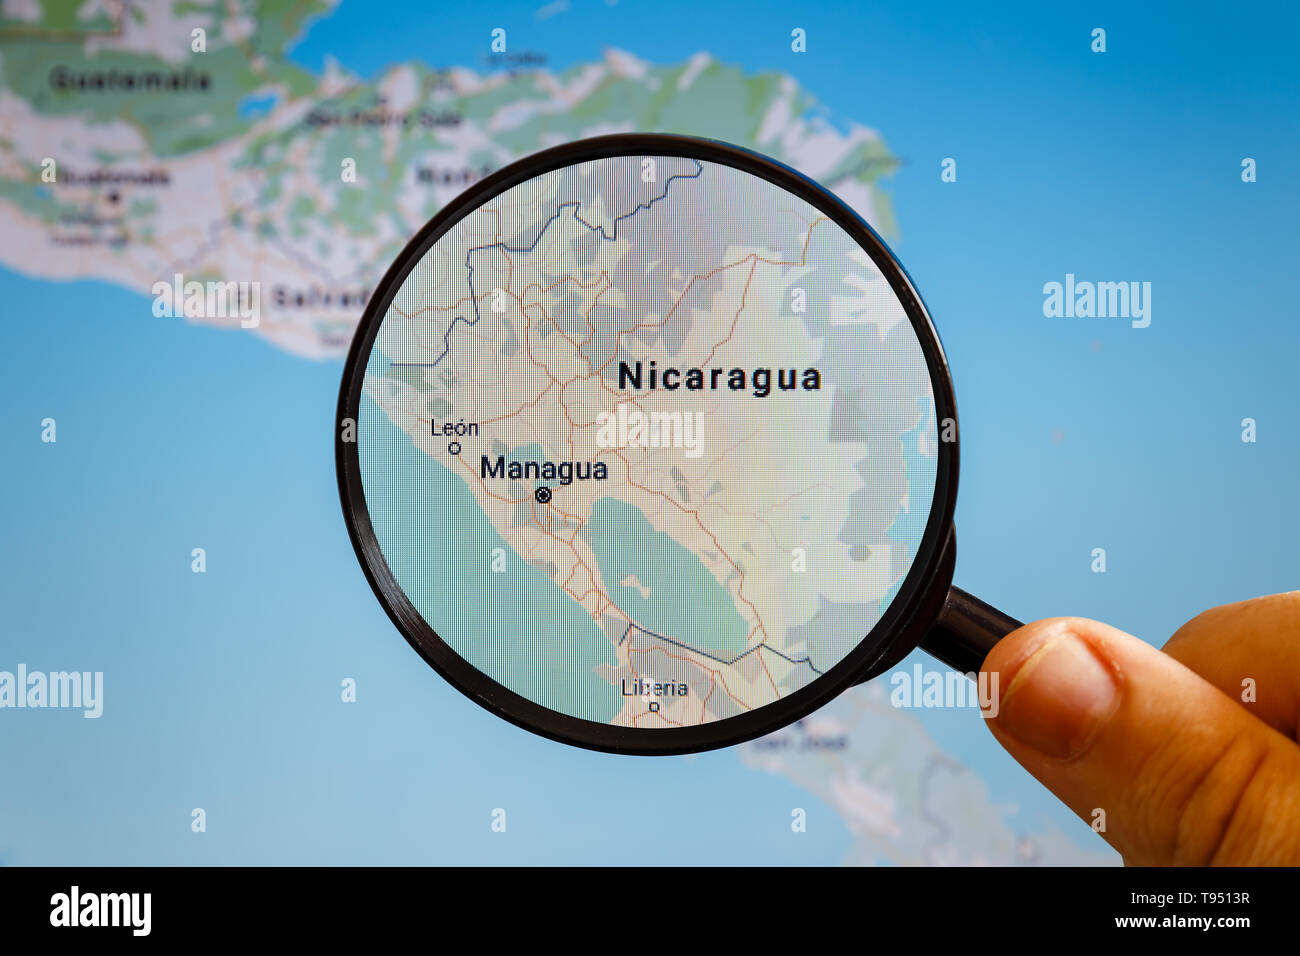 Managua, Nicaragua. Political map. The city on the monitor ... on tegucigalpa on map, montevideo on map, mbabane on map, makassar on map, taegu on map, cayman islands on map, panama on map, valledupar on map, havana on map, kampala on map, kingston on map, cancun on map, toronto on map, san juan on map, libreville on map, rio de janeiro on map, santiago on map, santo domingo on map, bogota on map, nassau on map,